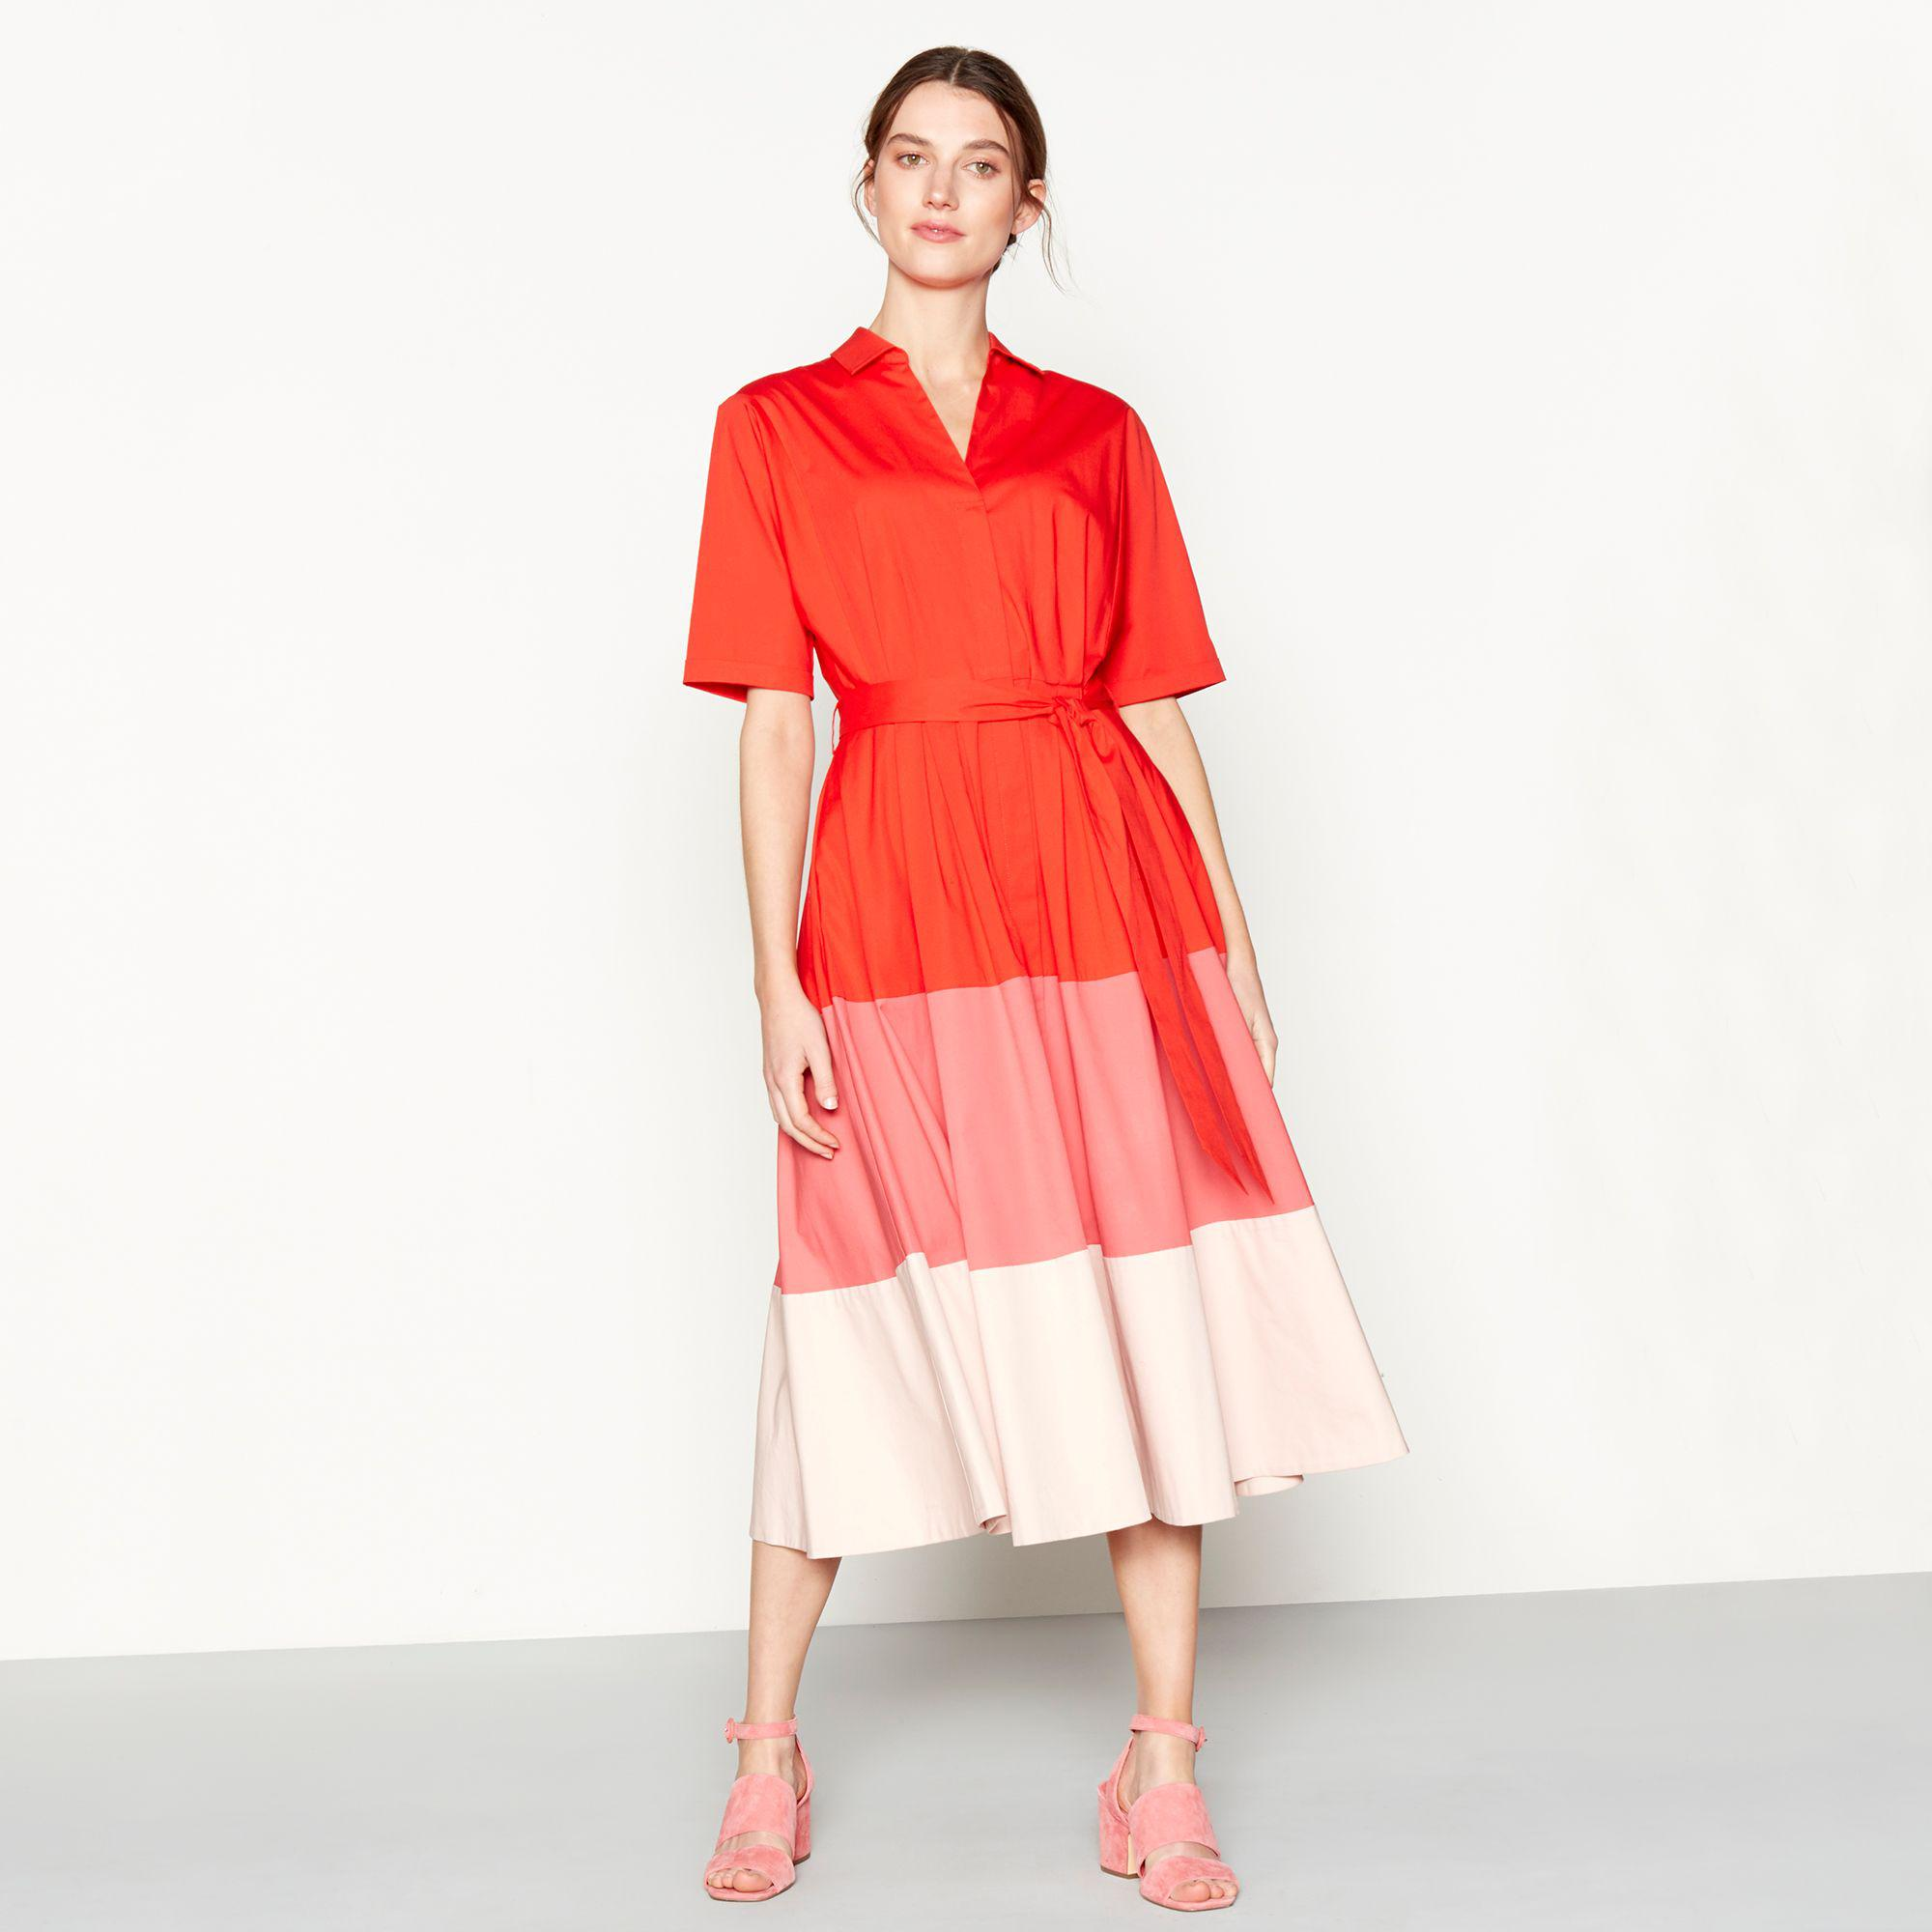 04bed12a1a8e J By Jasper Conran Red Colour Block Cotton Blend Short Sleeve Midi ...